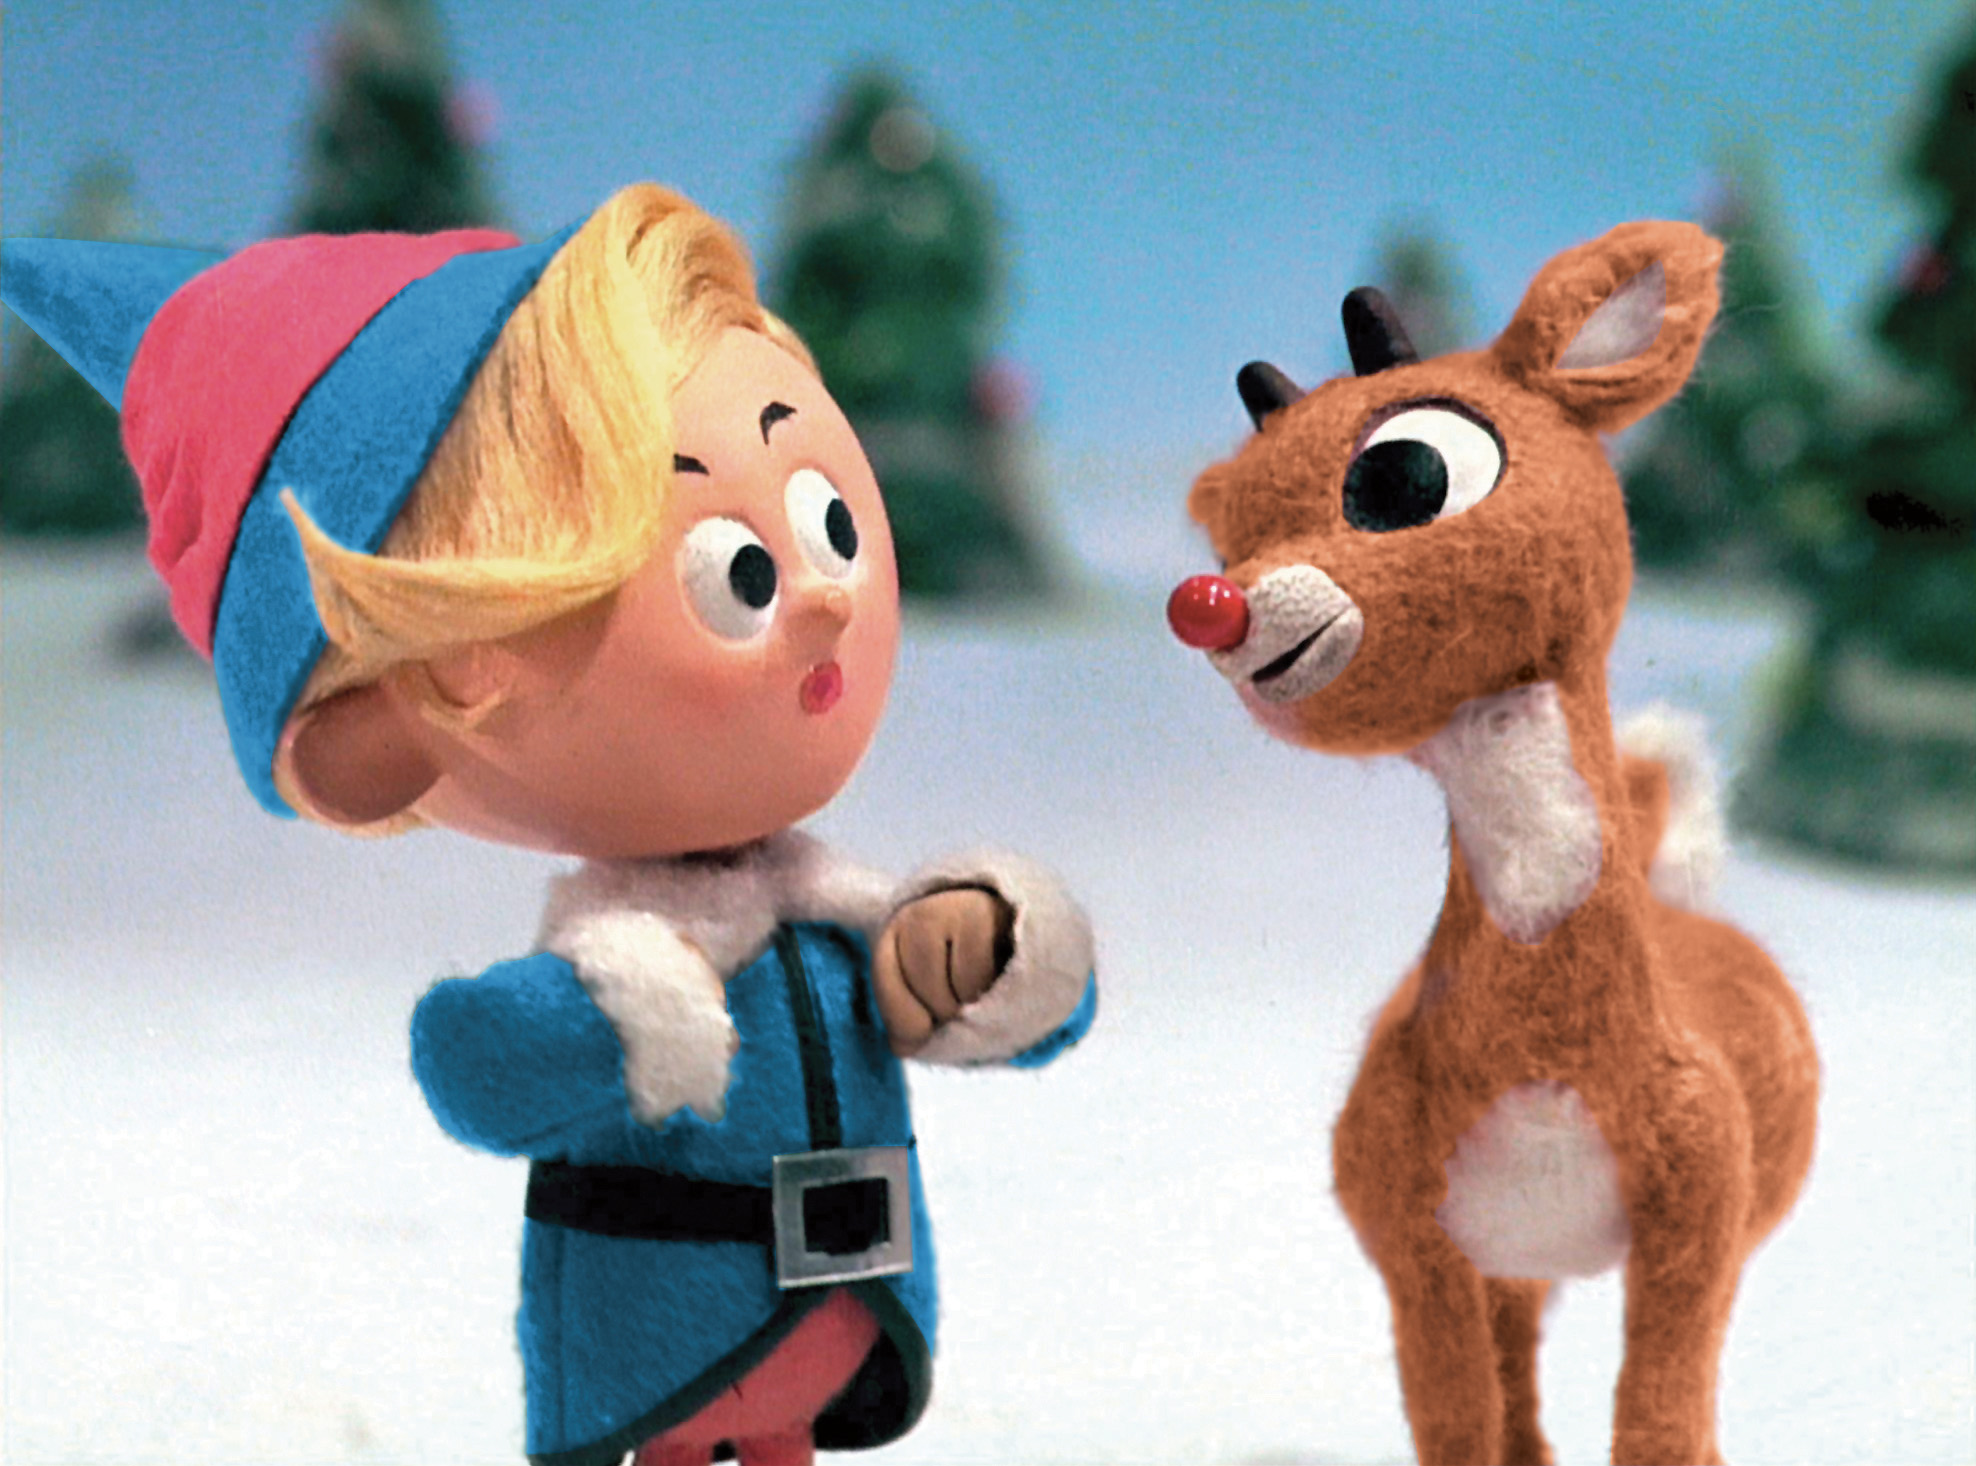 Rankin Bass's curiously cruel yet relentlessly classic take on Rudolph the Red-Nosed Reindeer.